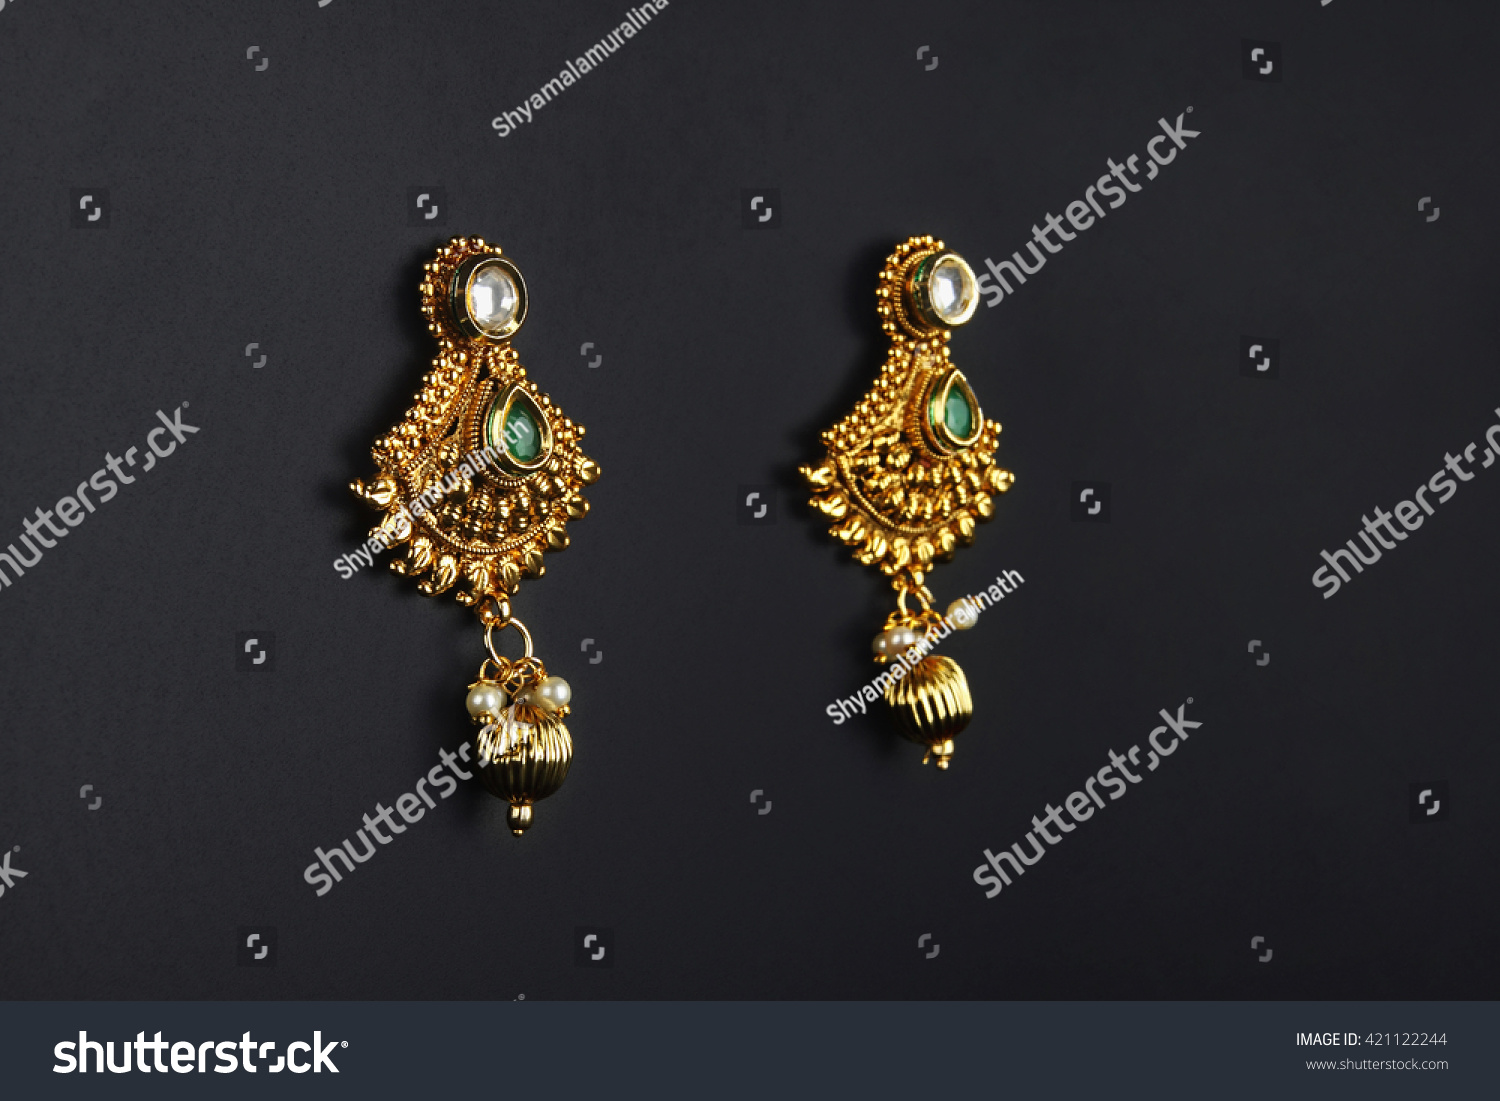 Indian Traditional Gold Earrings Stock Photo 421122244 - Shutterstock